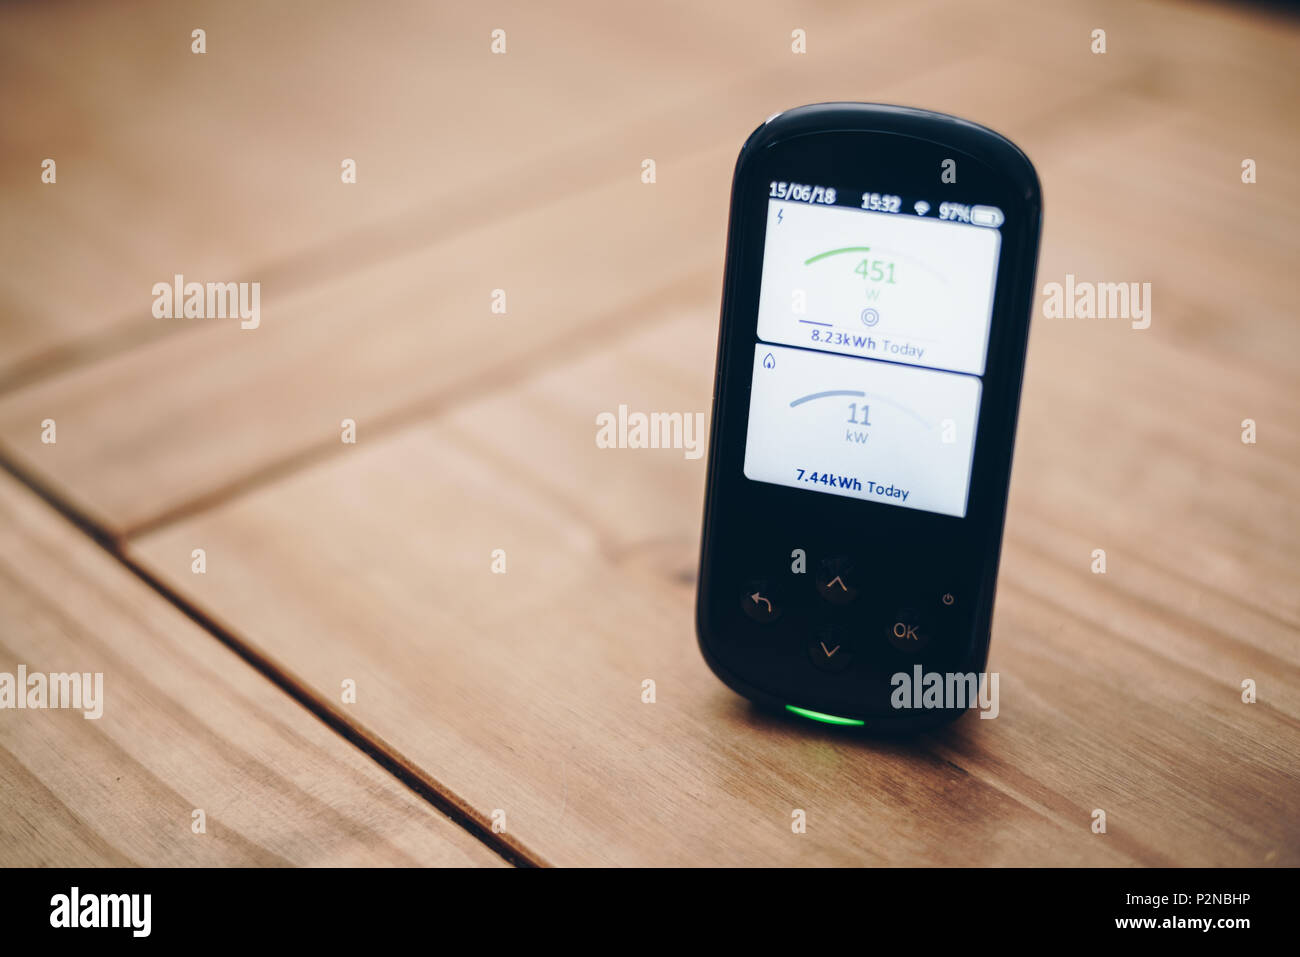 Domestic Energy Smart Meter on a living room coffee table, Displaying Energy Usage in Real Time - Stock Image